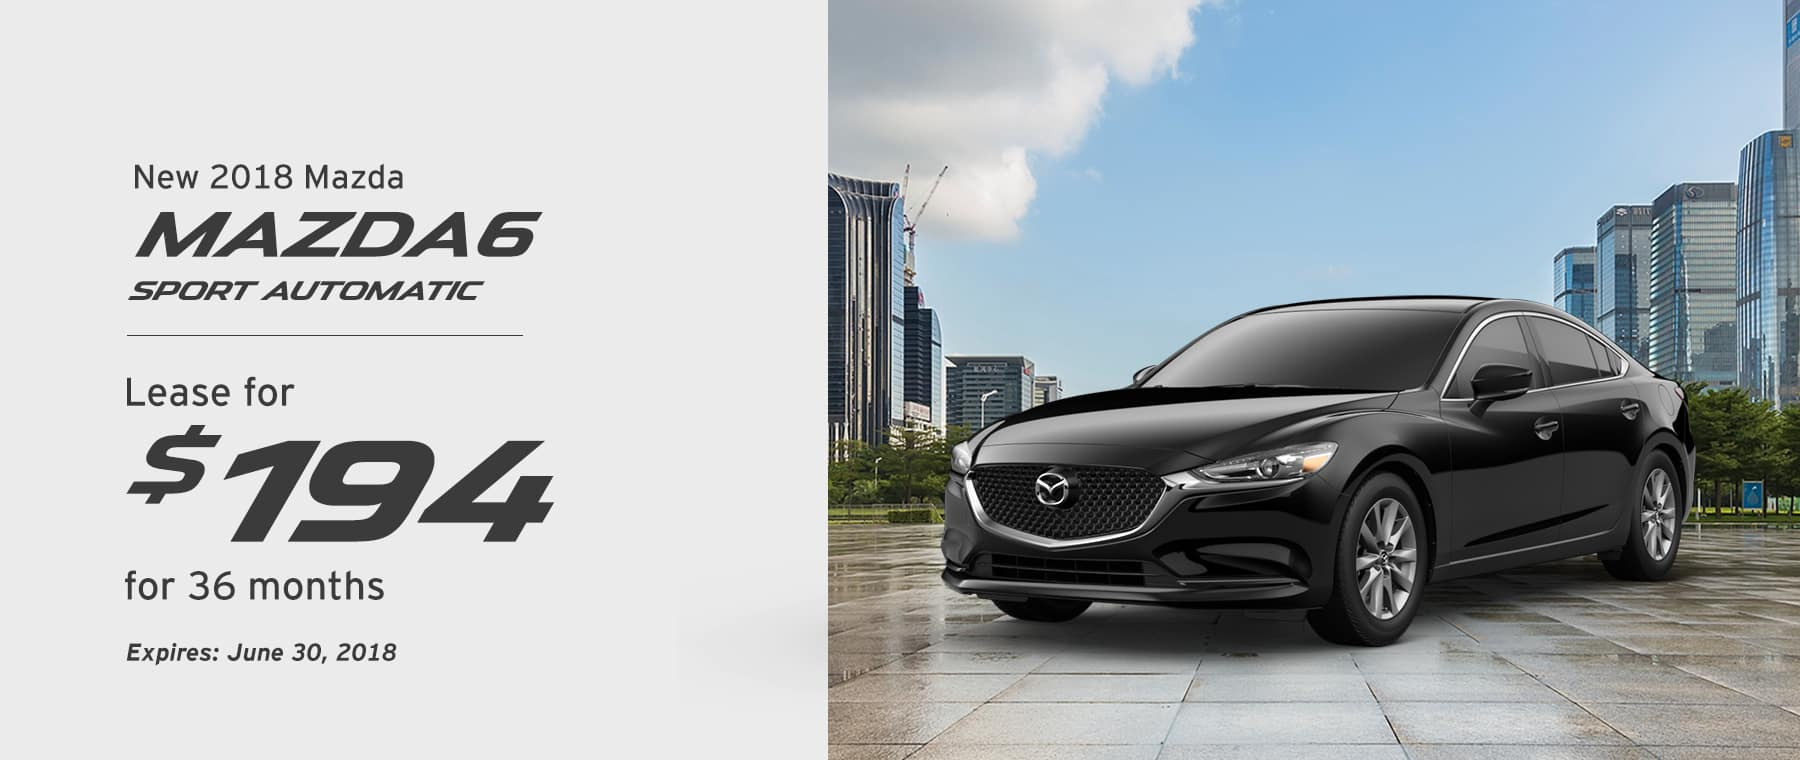 dealer brand the only s diego are advertising dealership mazda page standards areas focus with san marketing now guidelines on pdf global consistent